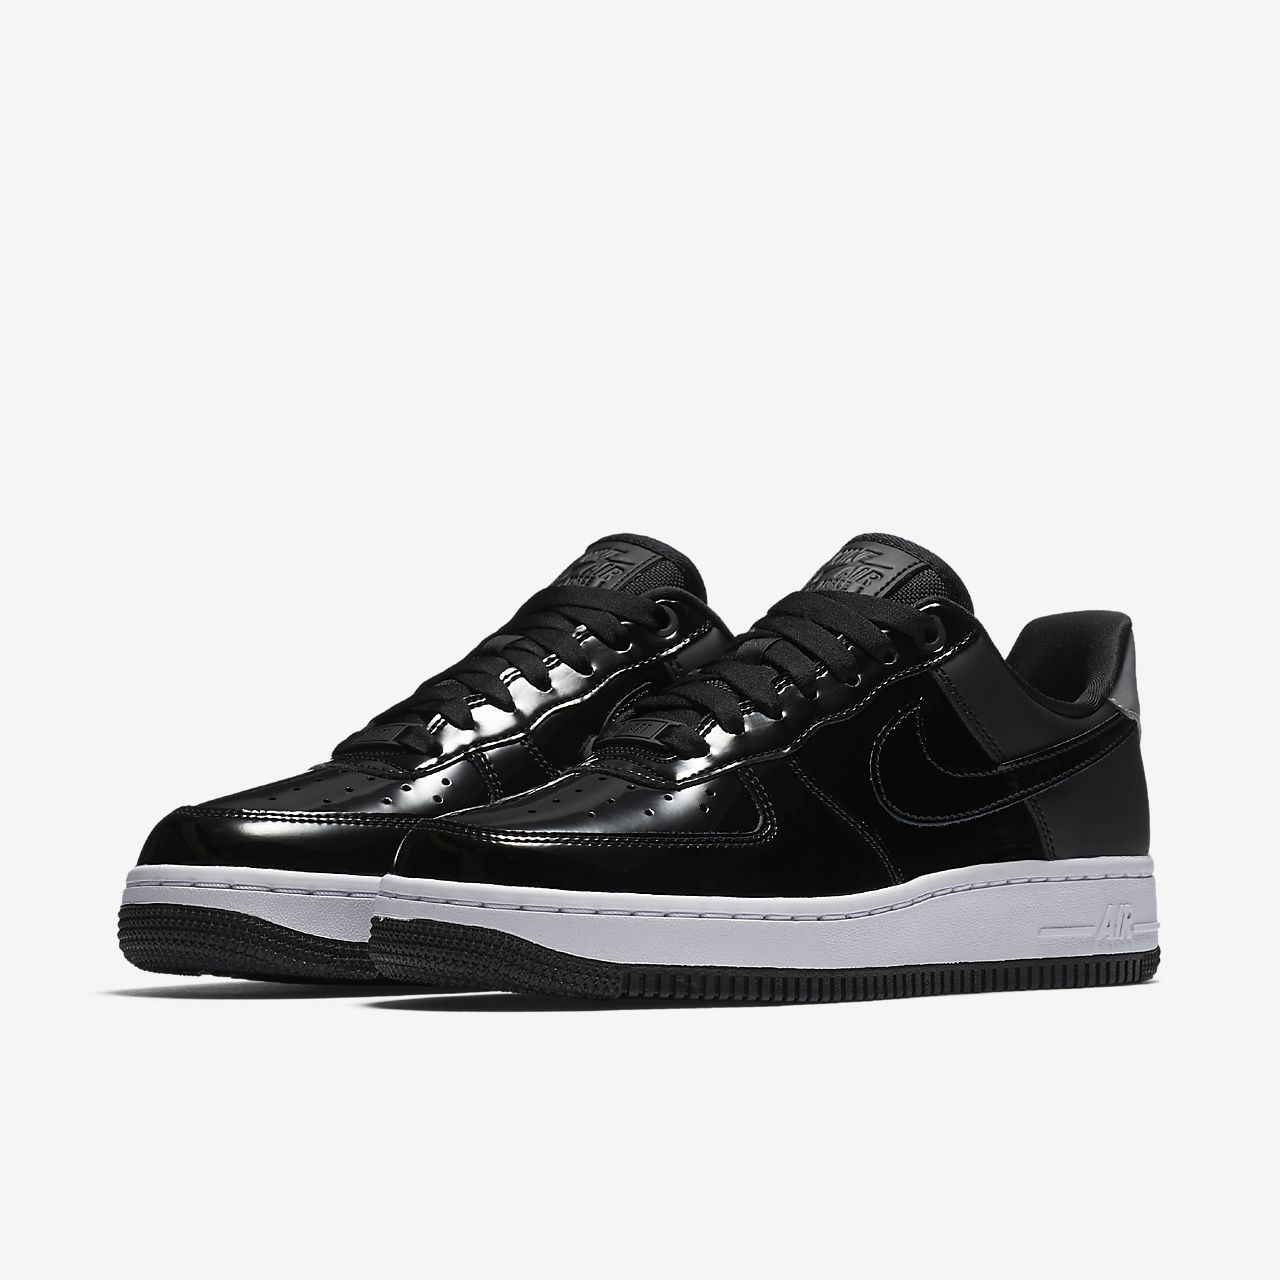 ... Nike Air Force 1 '07 SE Premium Women's Shoe